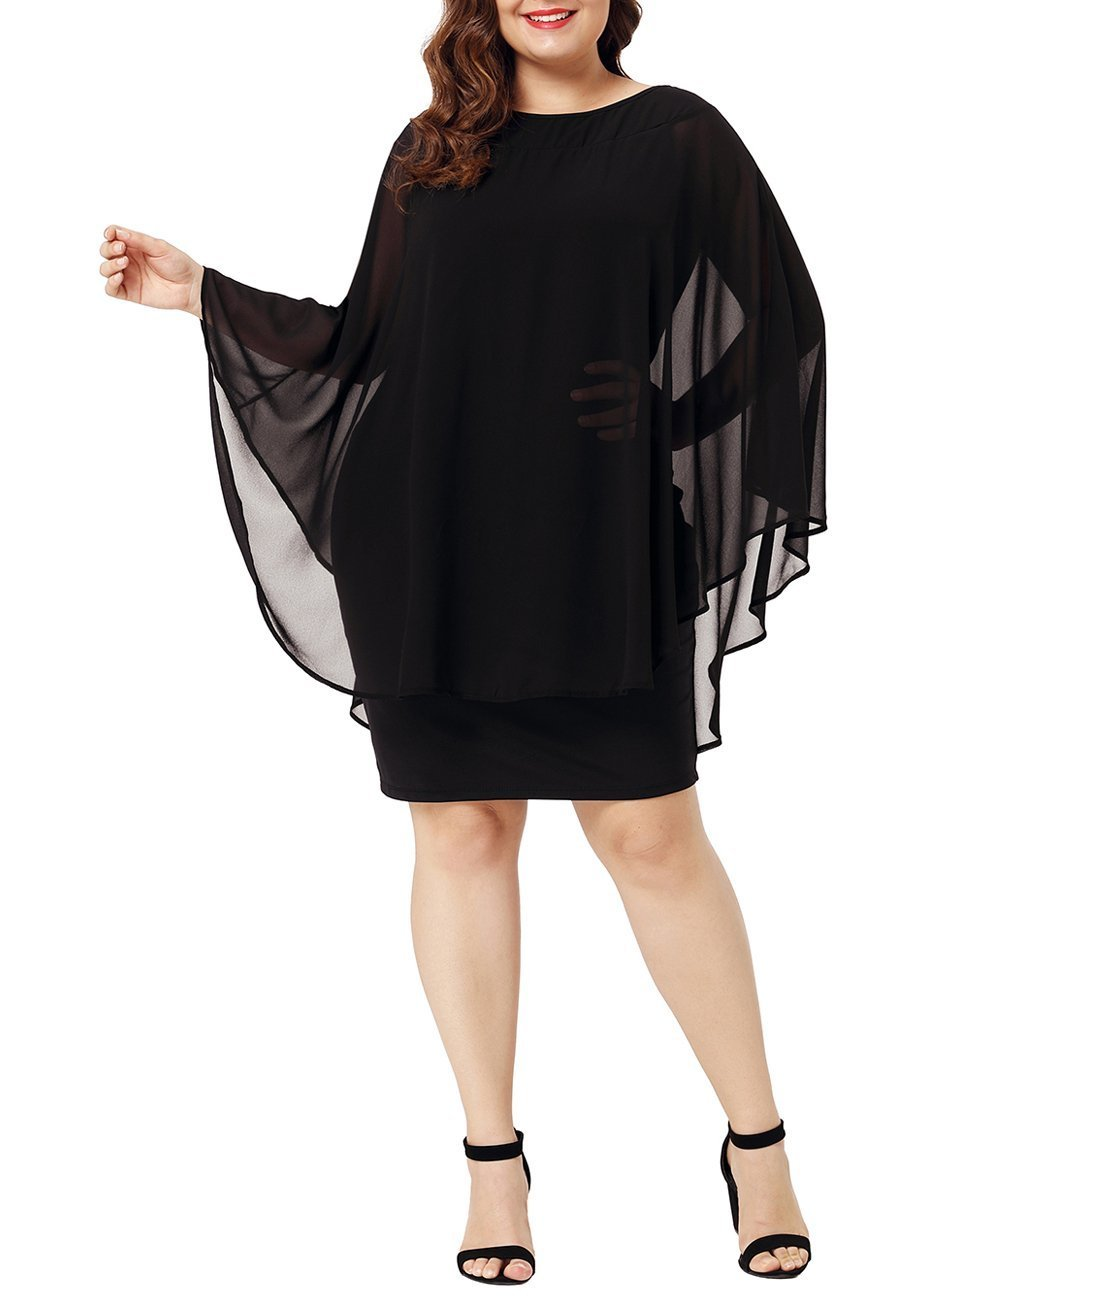 Lalagen Womens Plus Size Ruffle Bodycon Cocktail Party Pencil Dress with Cape Black XXL